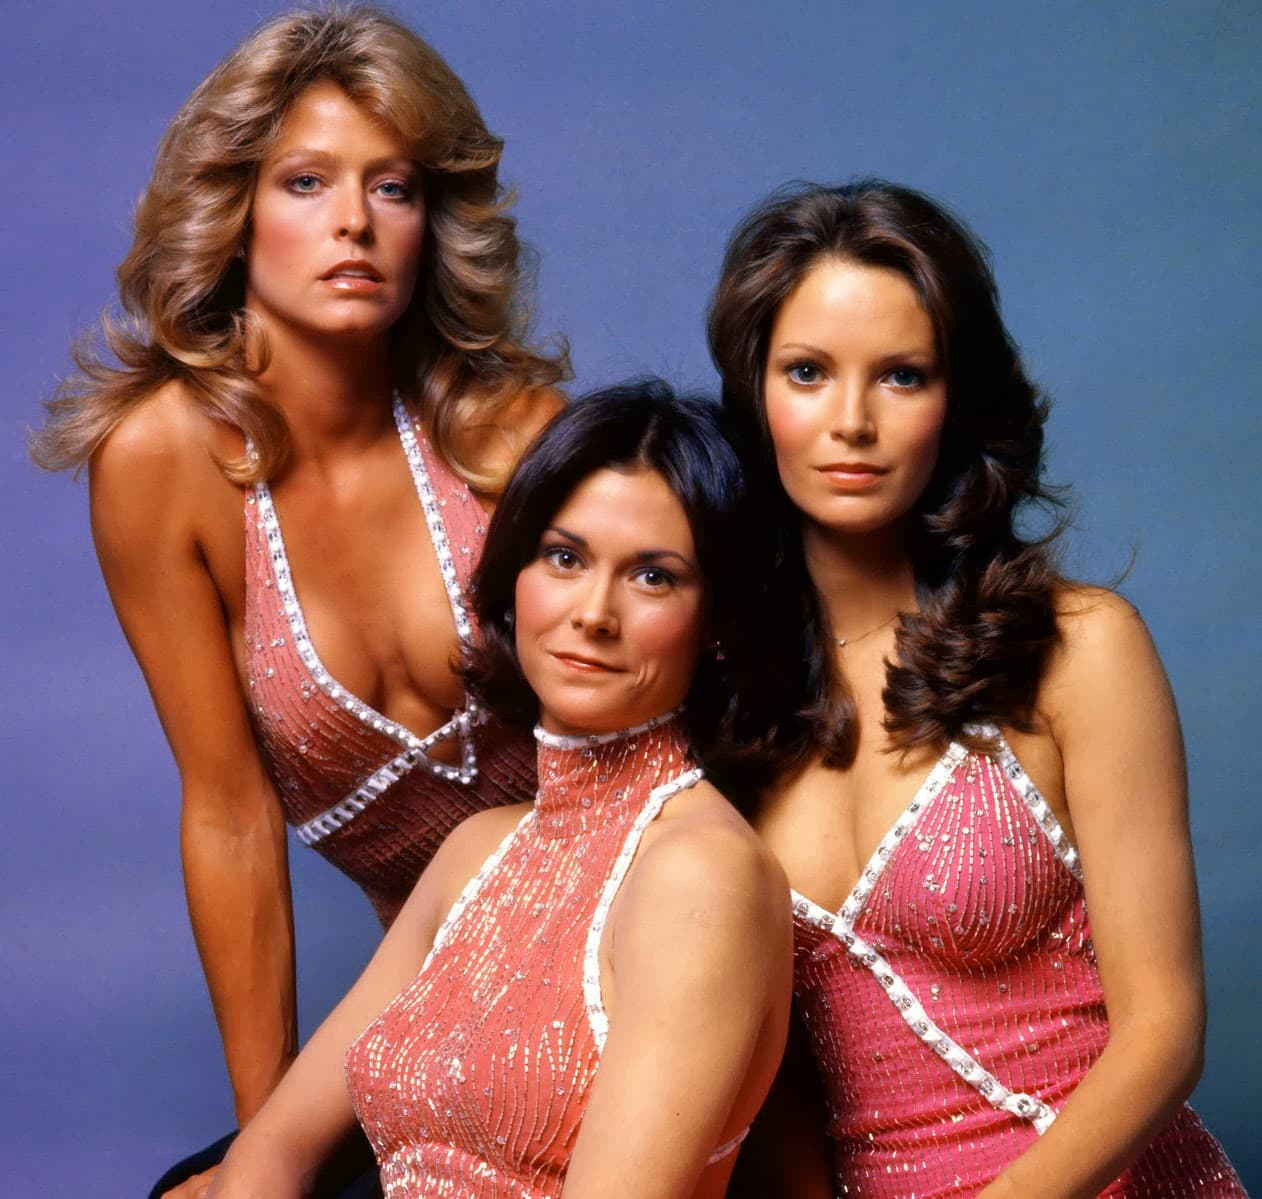 The original three Charlie's Angels actresses in pink evening gowns (1977)